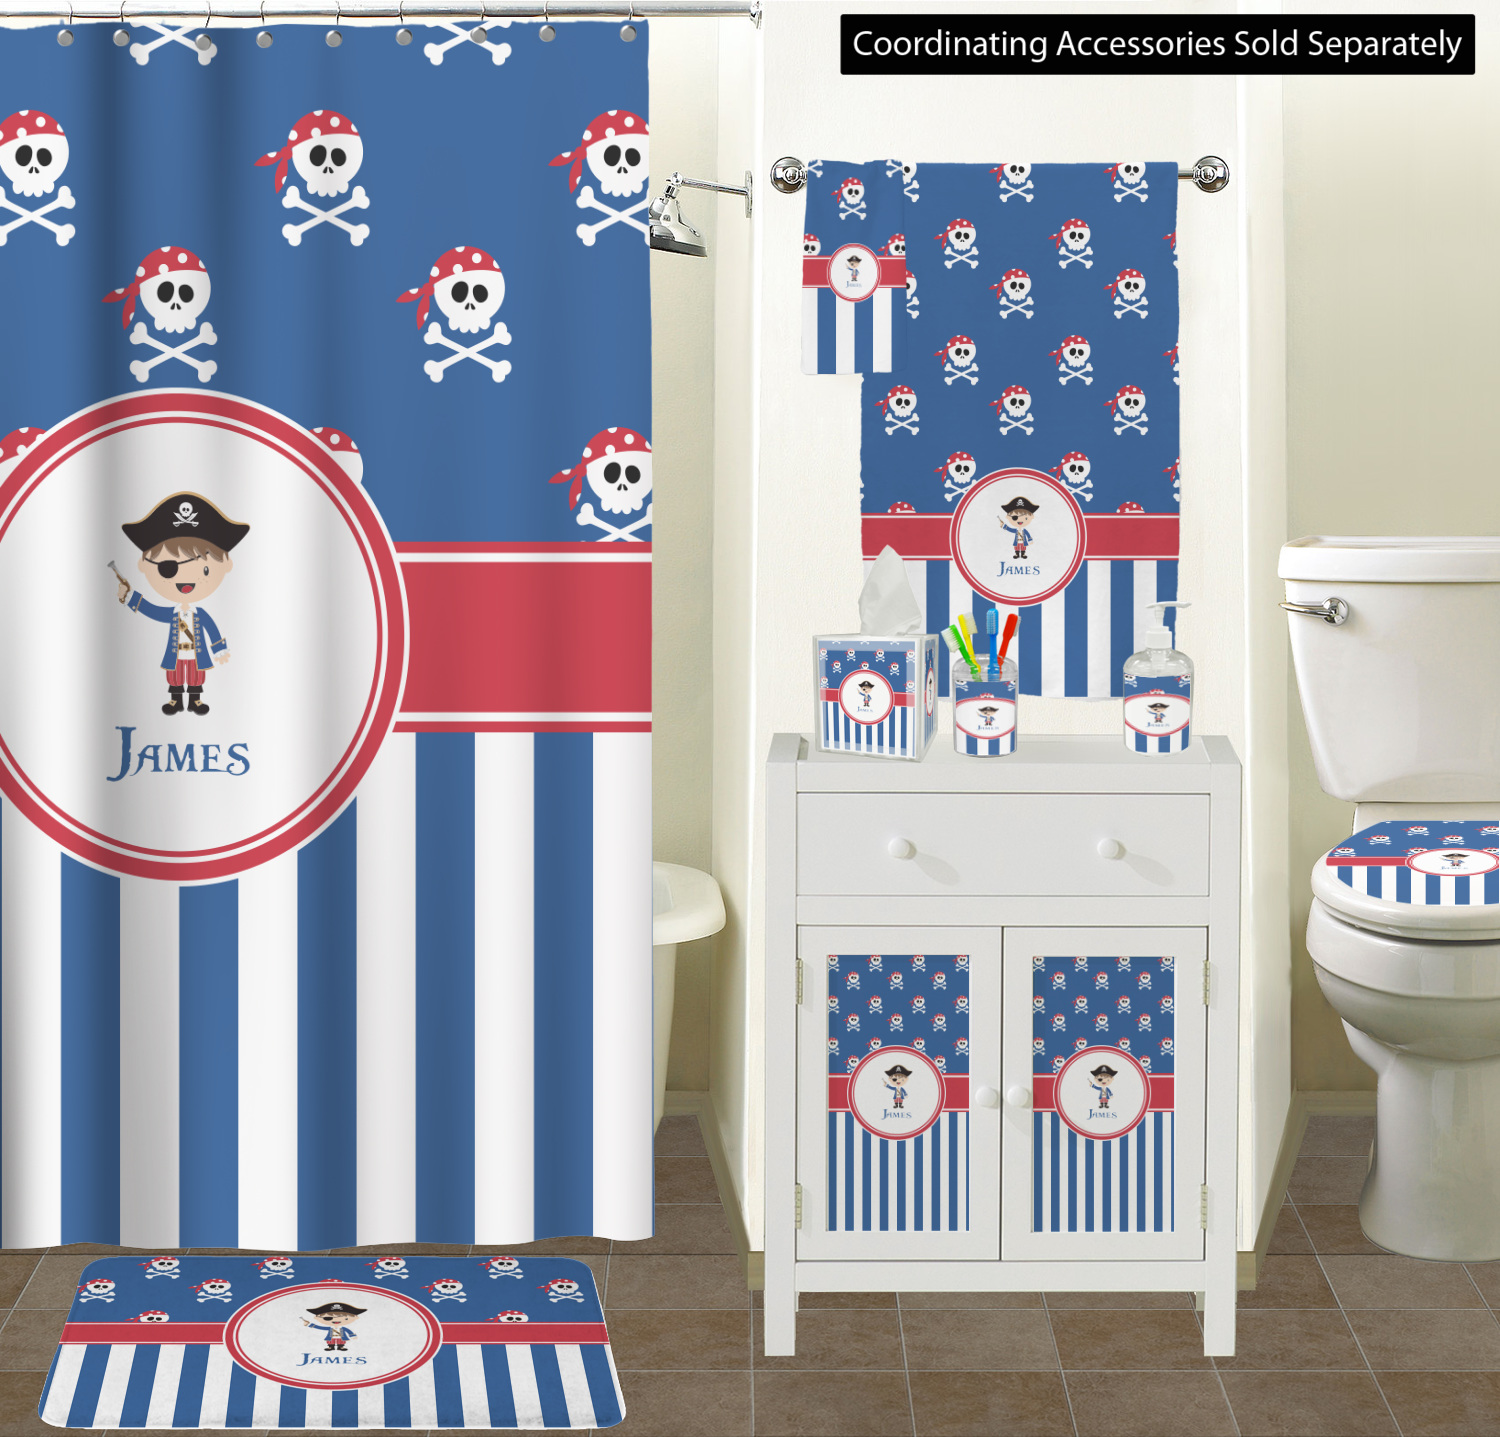 Pirate Shower Curtain Part - 19: ... Shower Curtain for Boys Hair and Skin Color Blue Pirate Bathroom Scene  ...